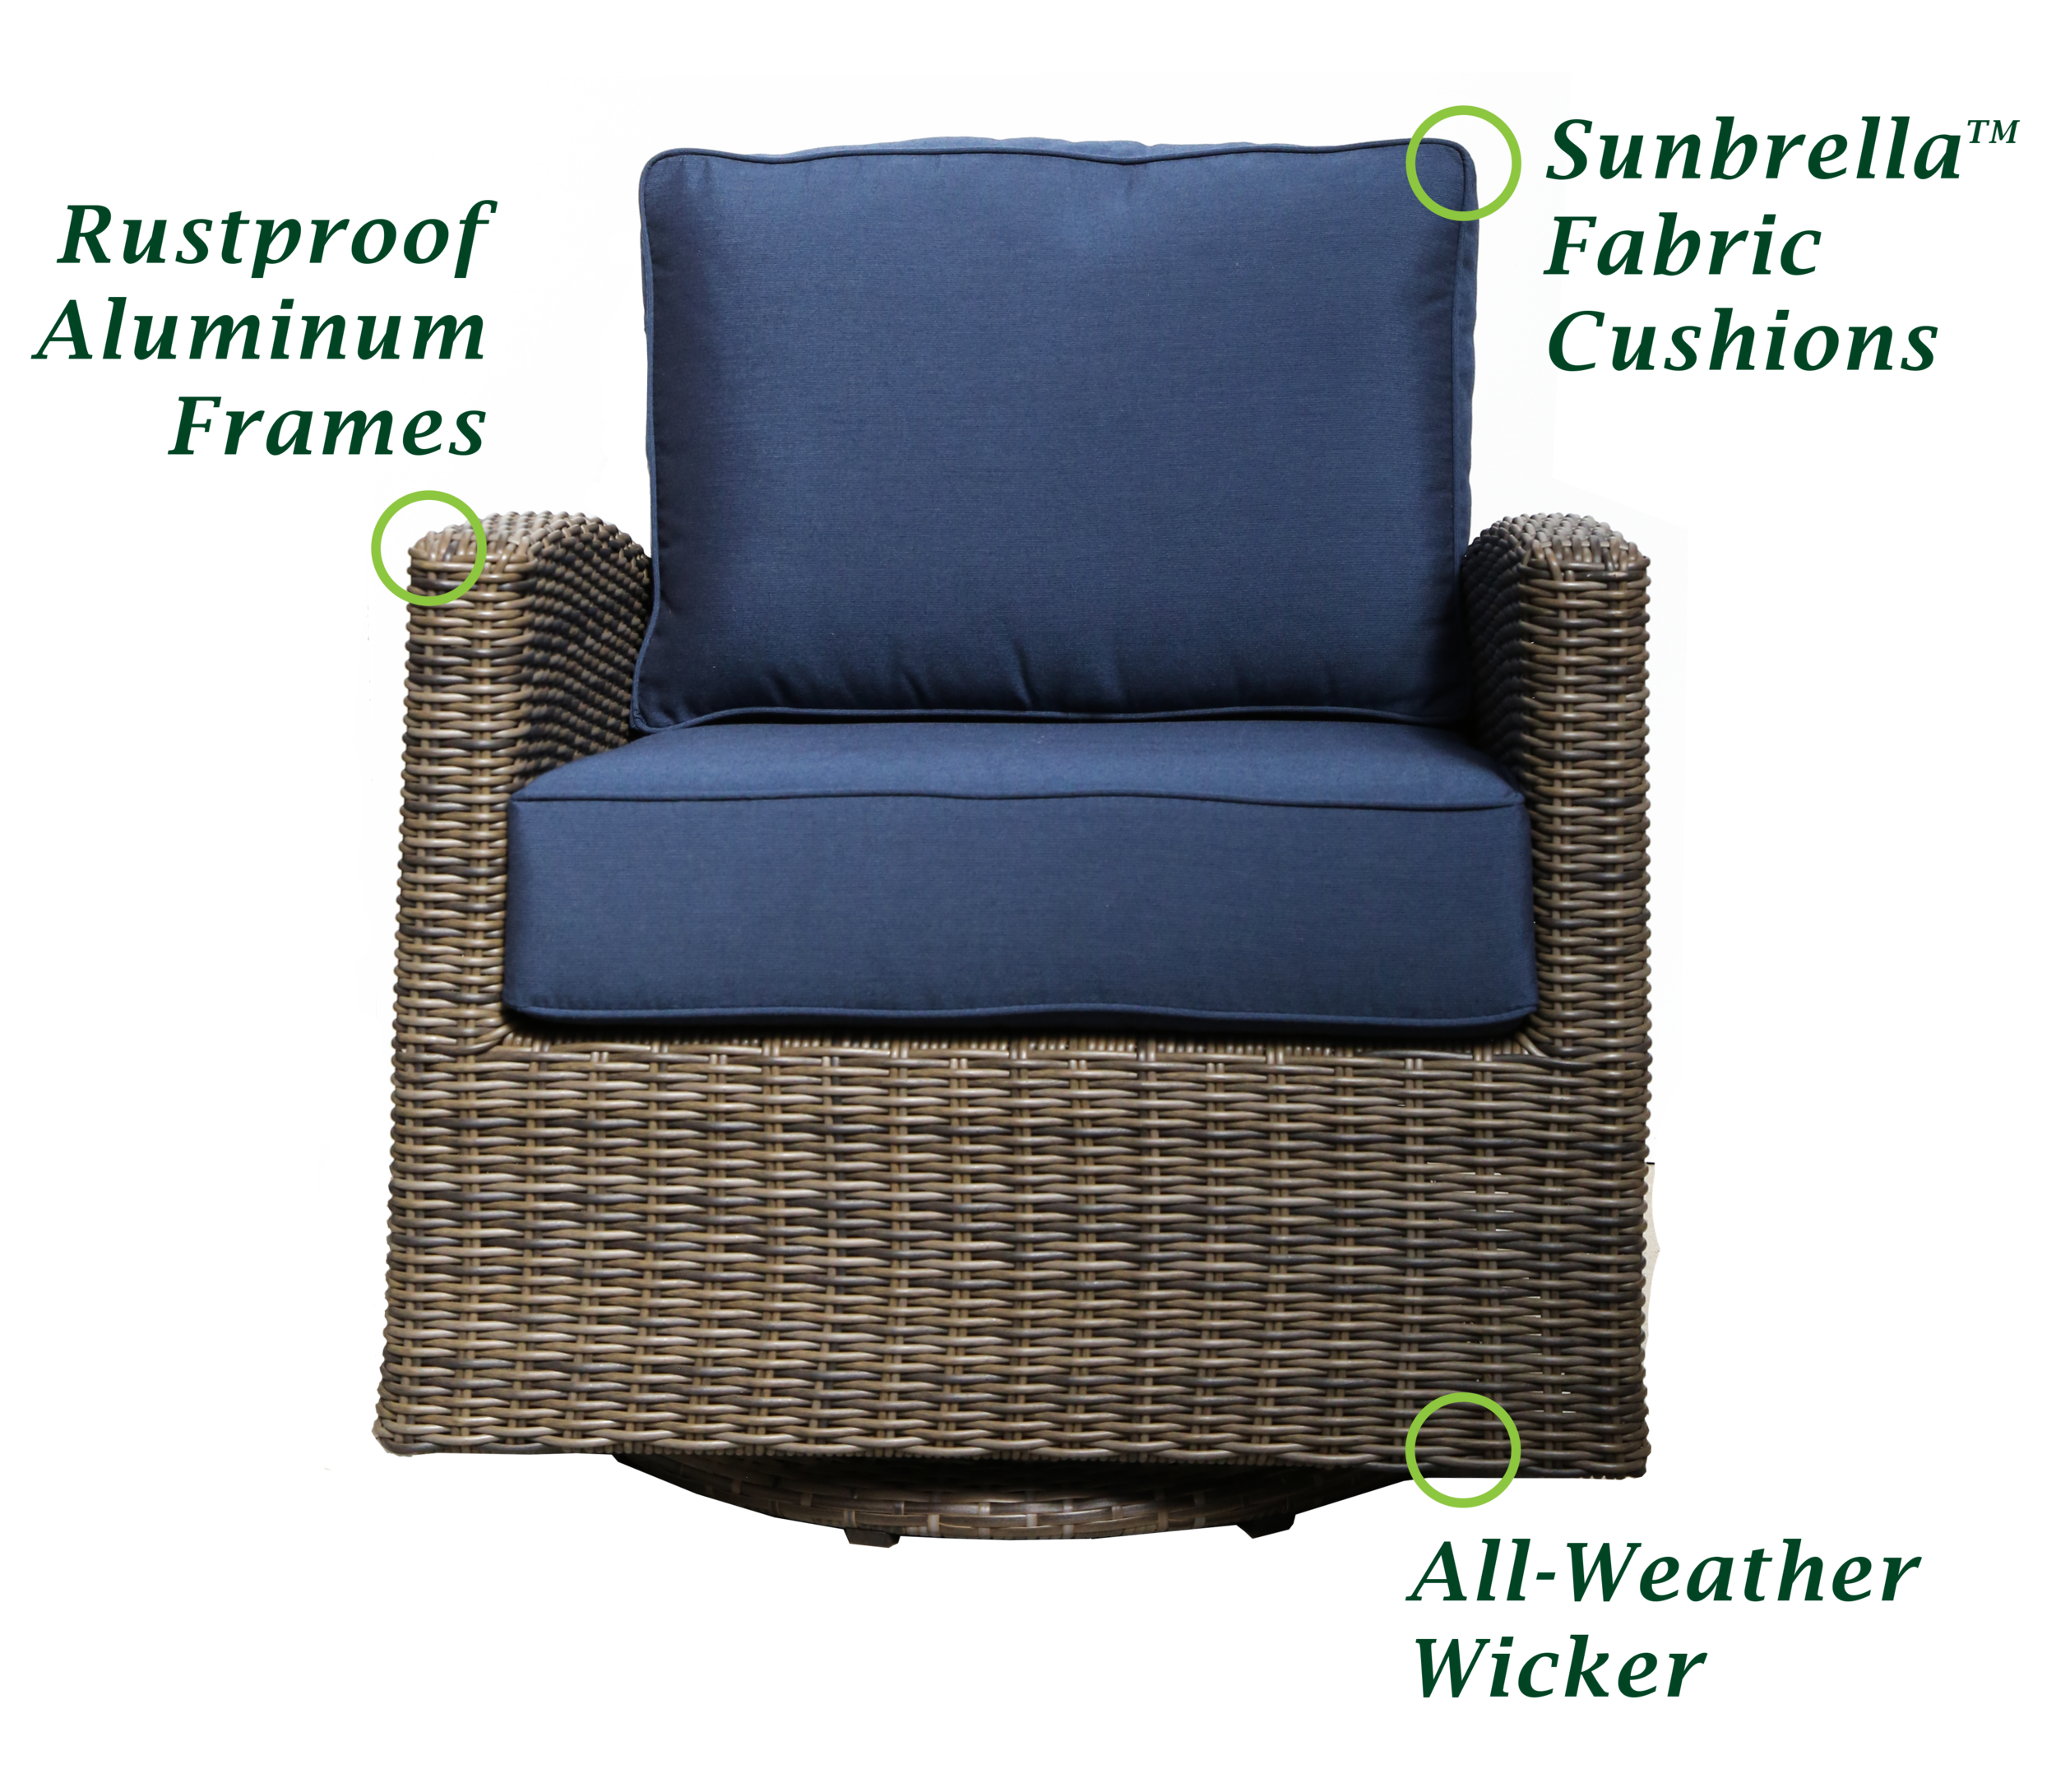 Many Factors Come Into Play When Purchasing The Right Outdoor Furniture, So  Weu0027ve Marked Every Check Box On Your Must Have List For Furnishings Tough  Enough ...